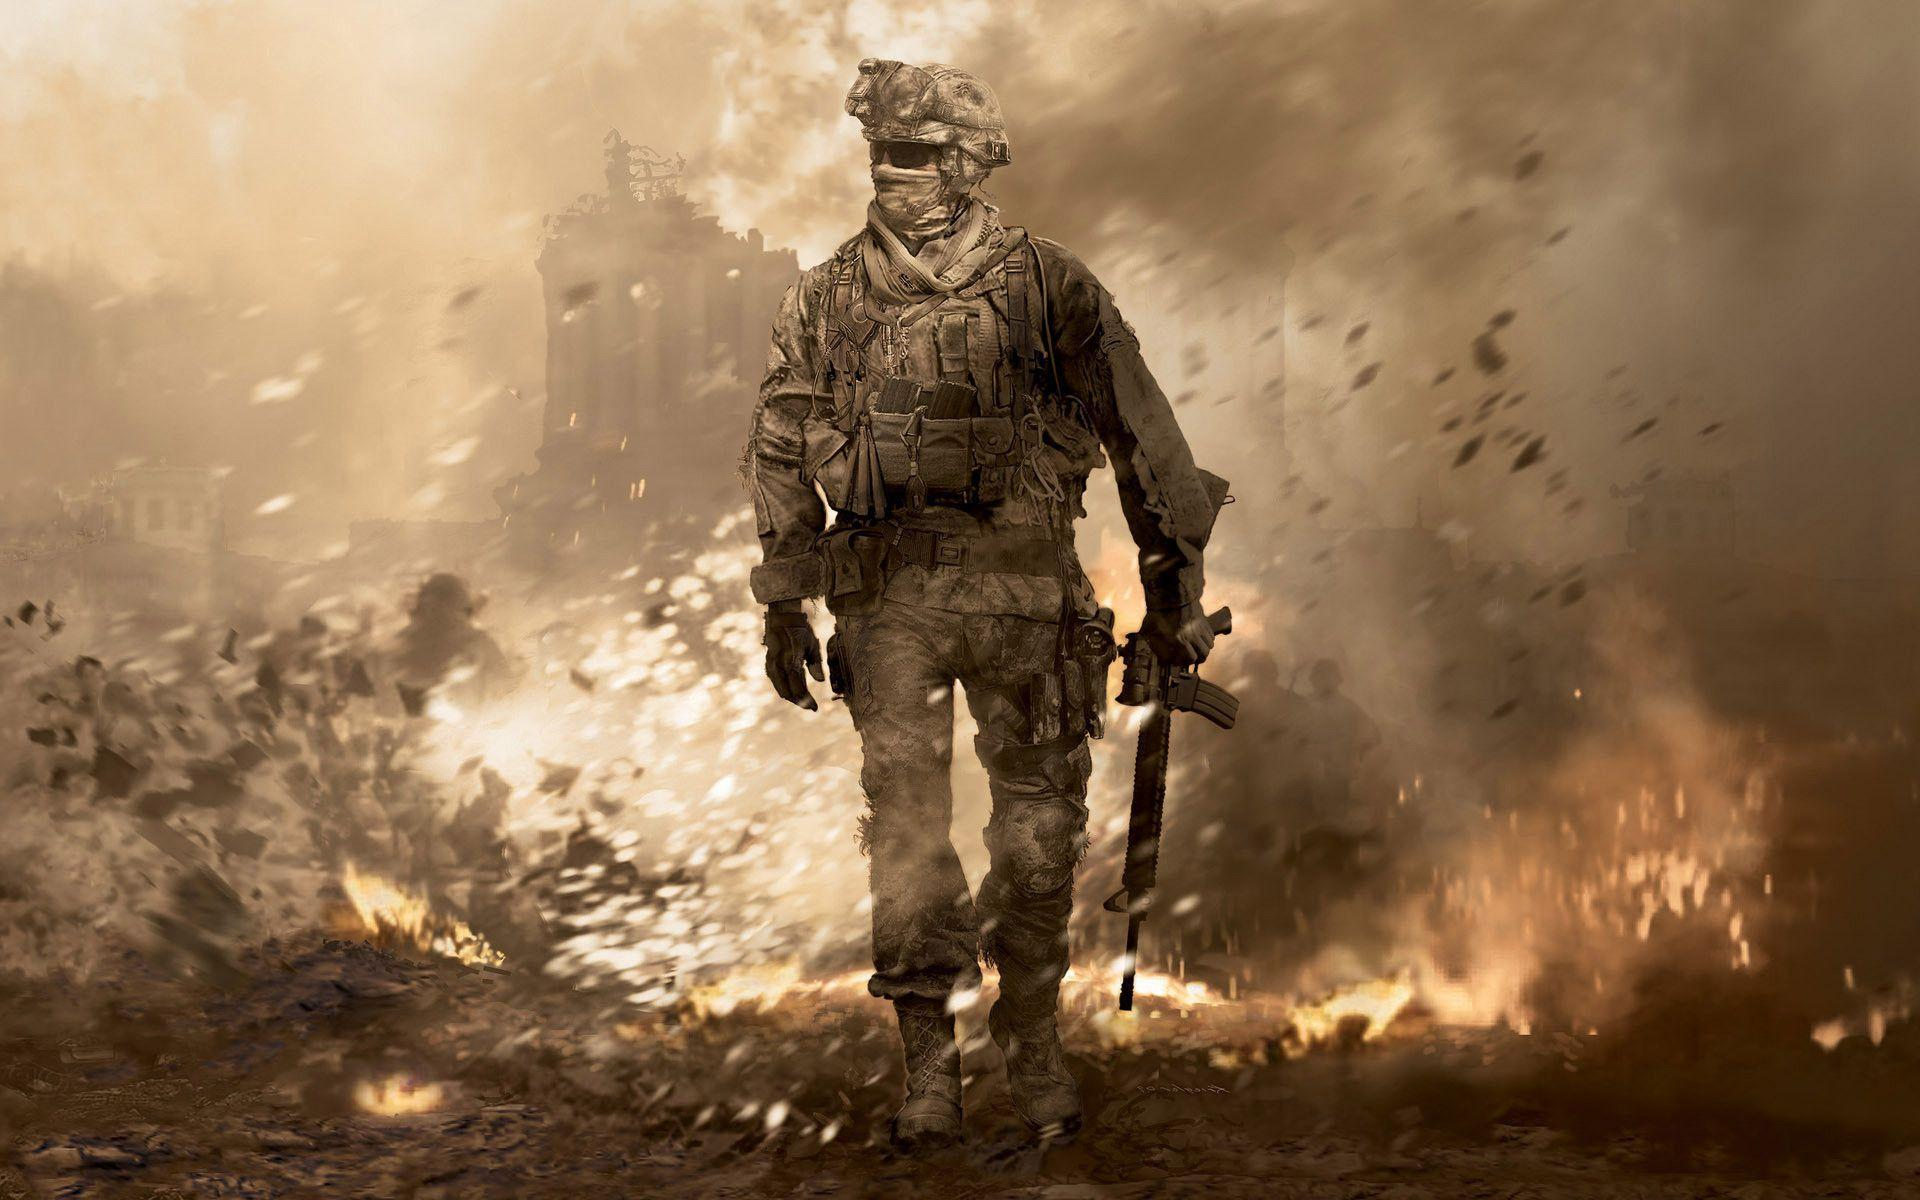 Modern Warfare 2 Wallpapers 1080p Wallpaper Cave Hd Background Image Id 330739 1920x1200 Game Call Of Duty